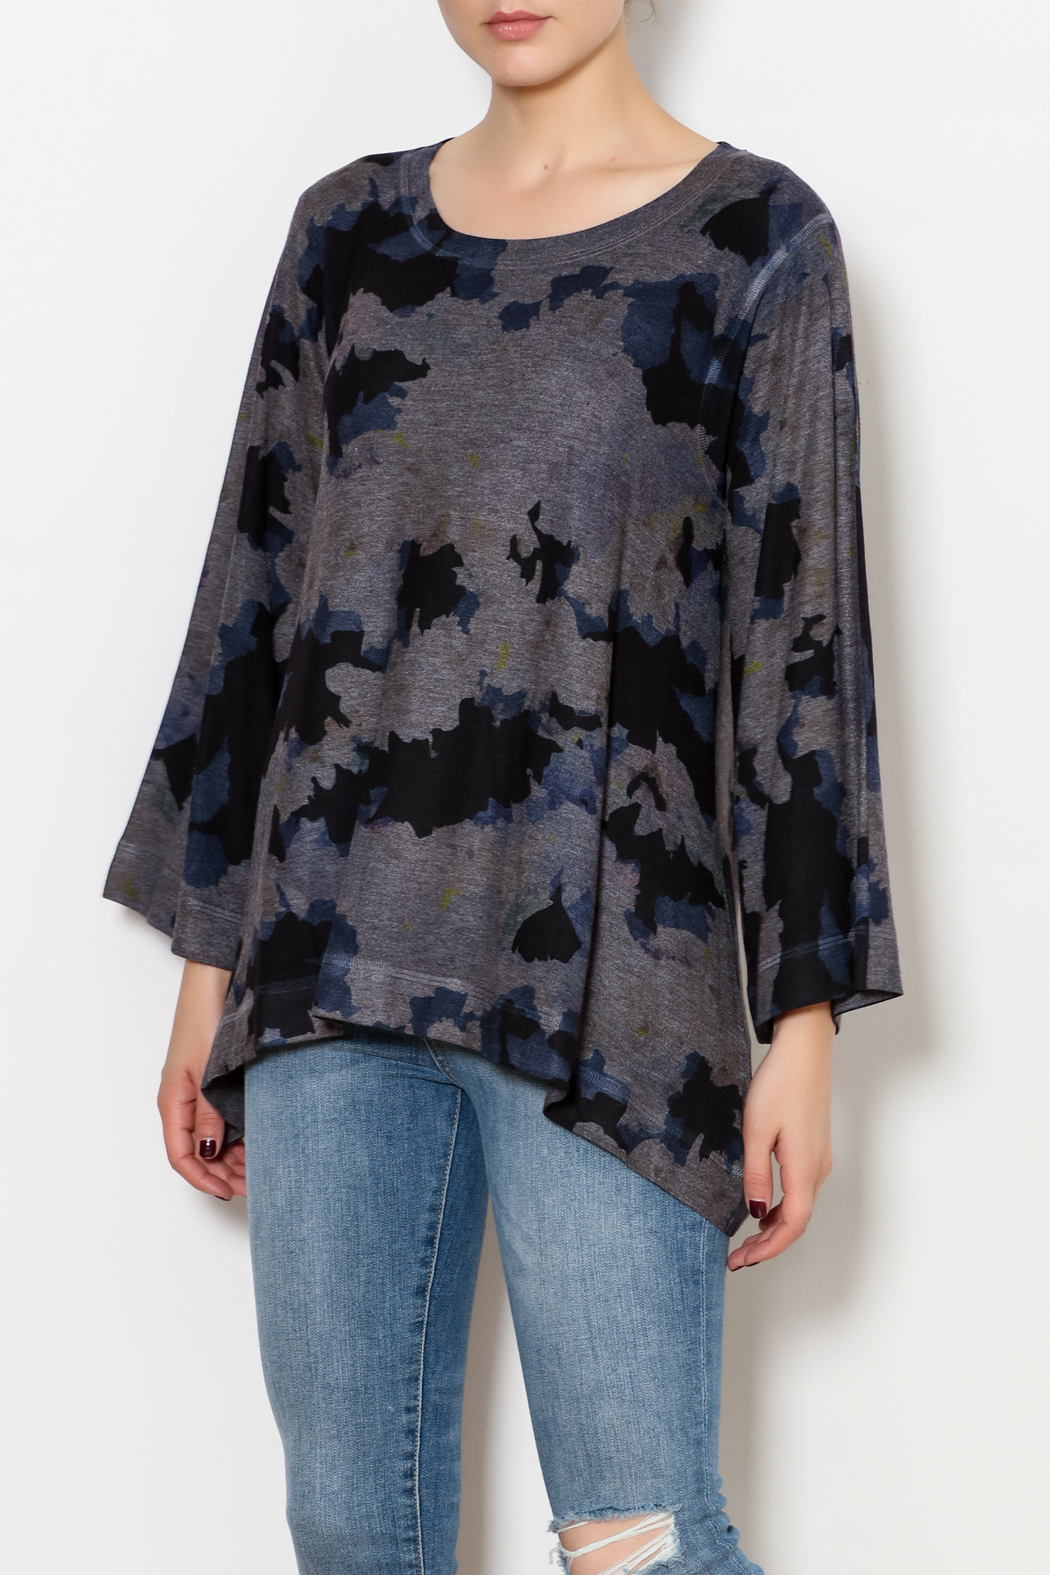 Nally & Millie Floral Top - Main Image